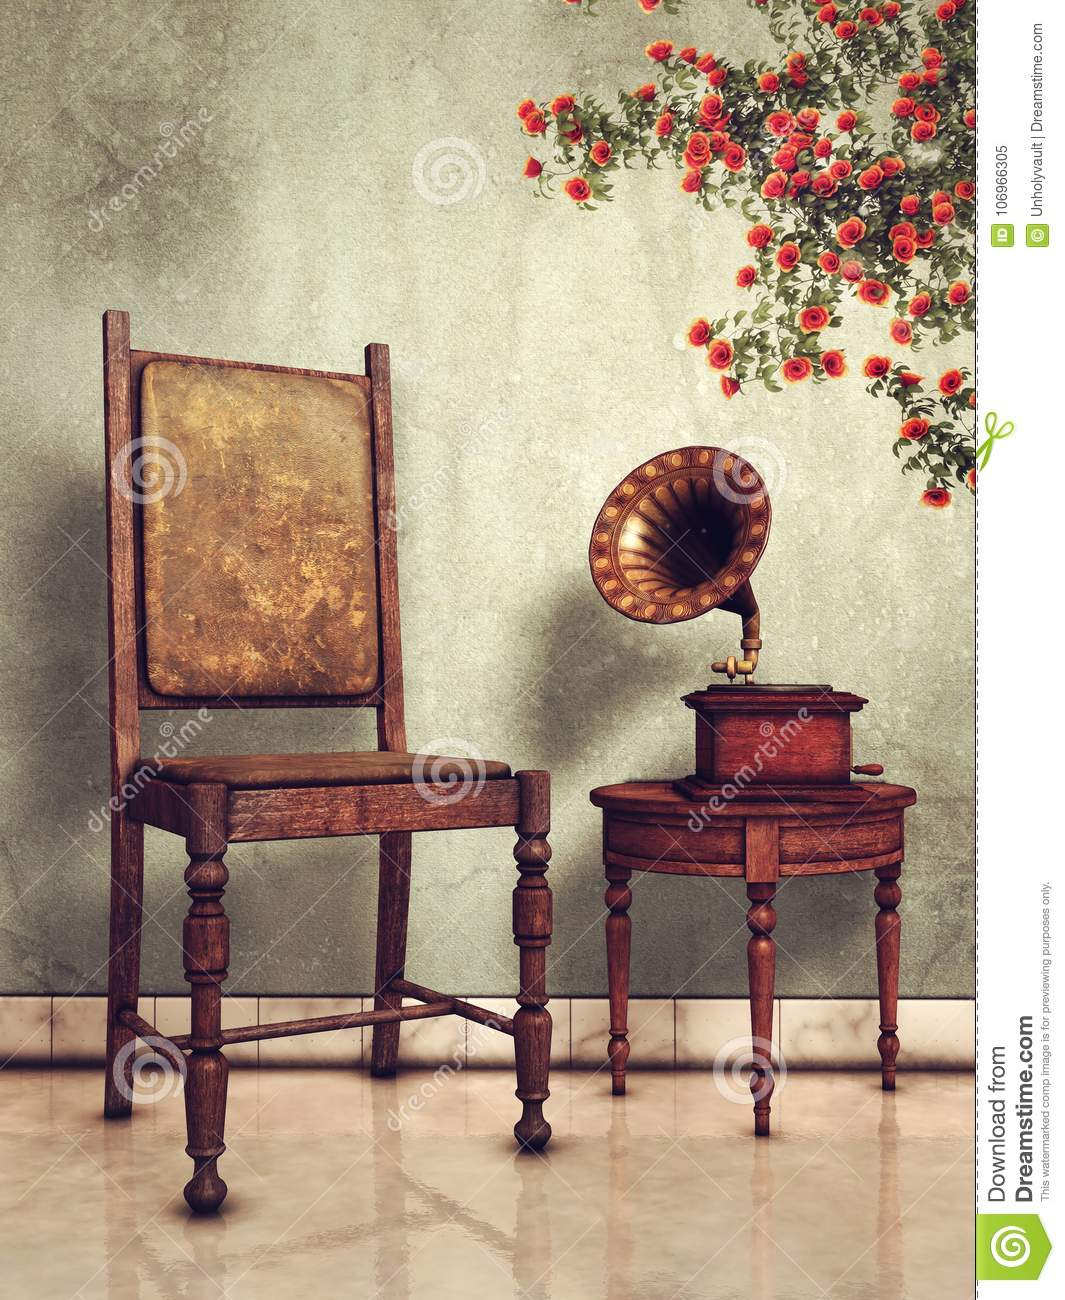 Vintage chair and gramophone